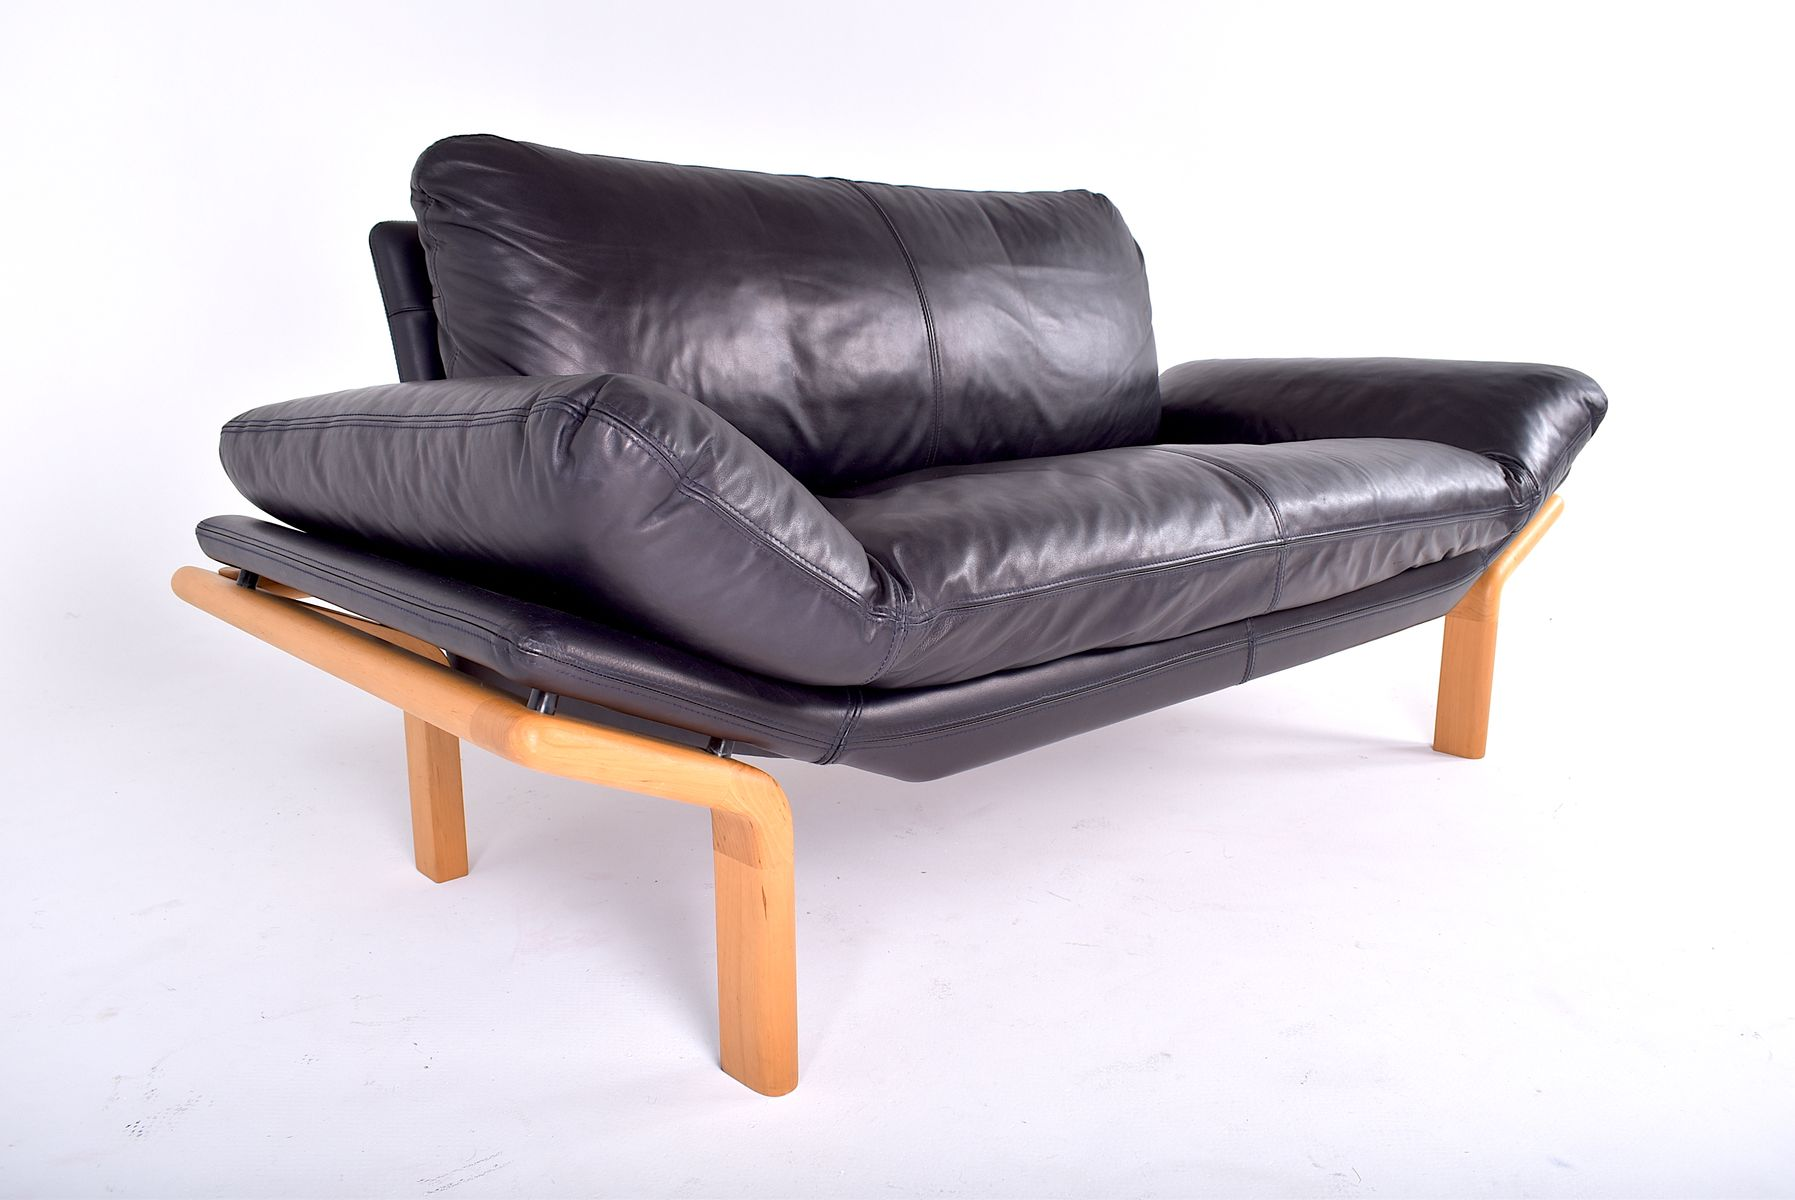 d nisches vintage 2 sitzer sofa von komfort bei pamono kaufen. Black Bedroom Furniture Sets. Home Design Ideas